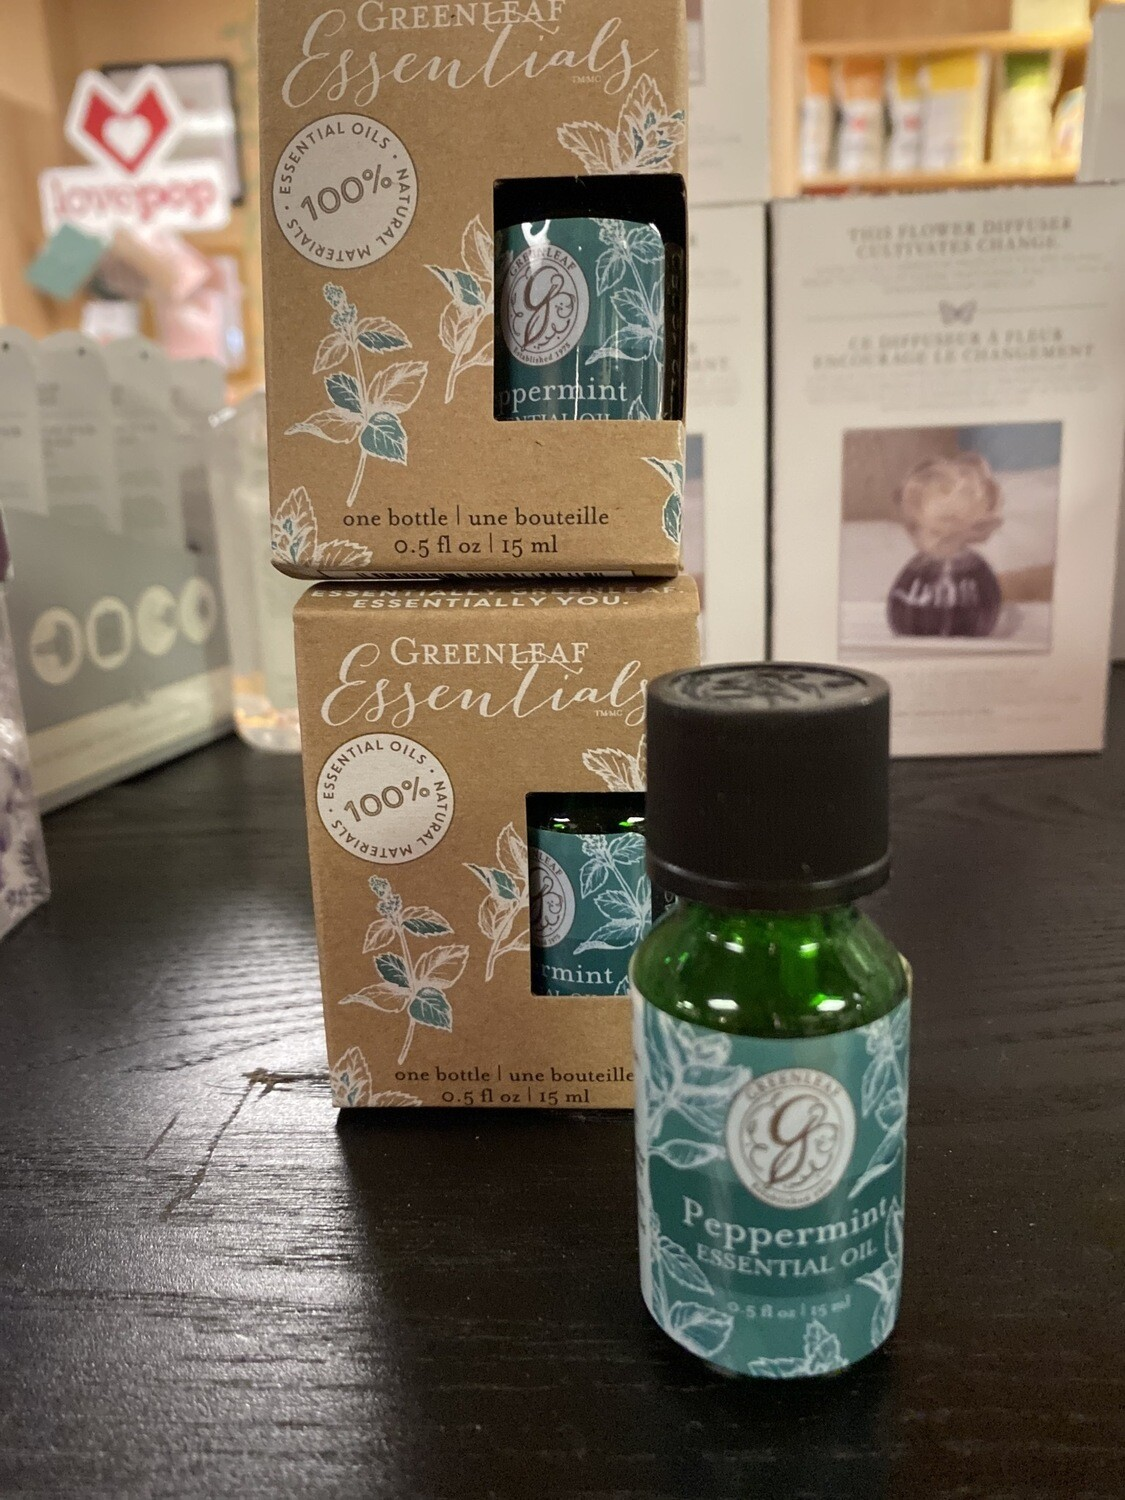 Greenleaf Essential Oil Of Peppermint